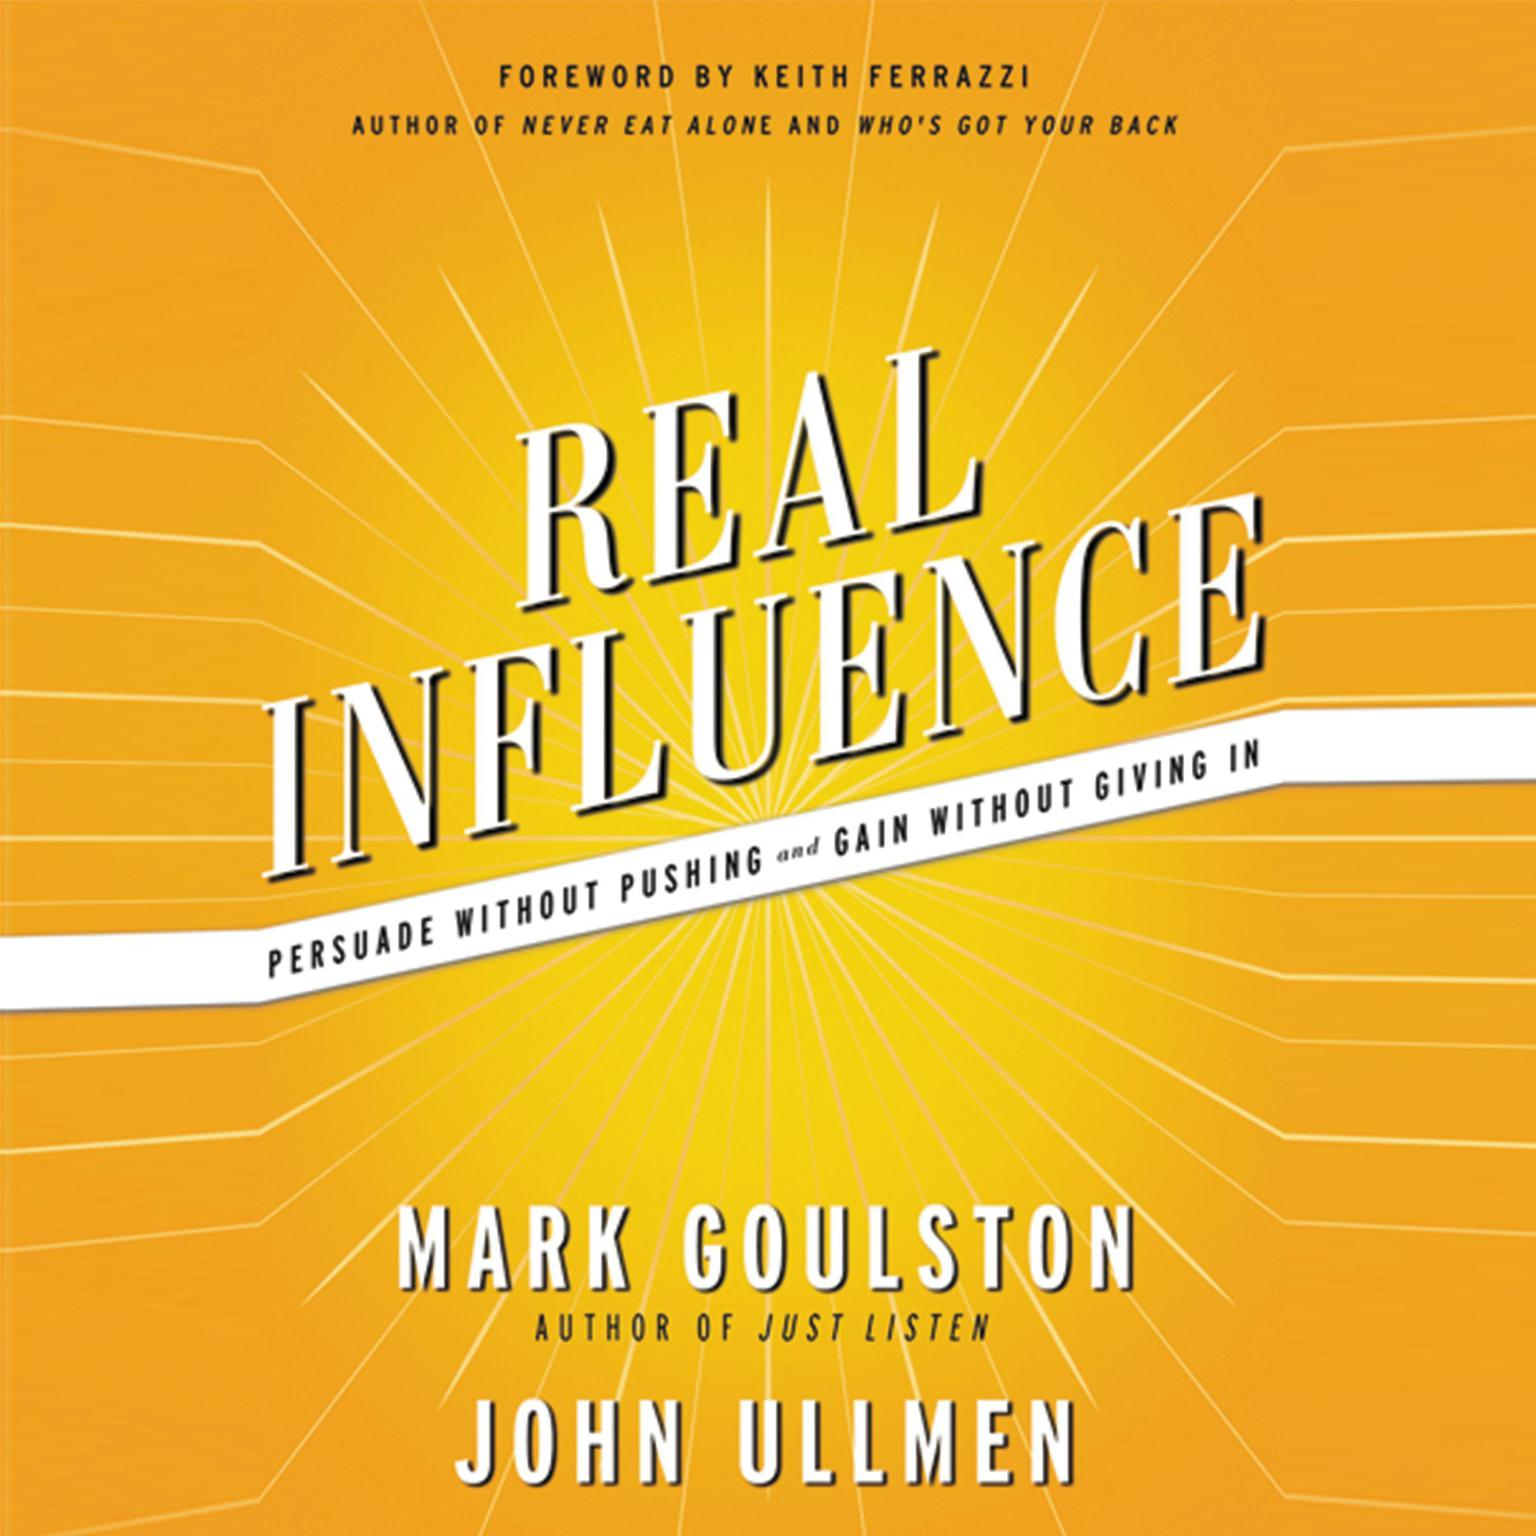 Printable Real Influence: Persuade Without Pushing and Gain Without Giving In Audiobook Cover Art